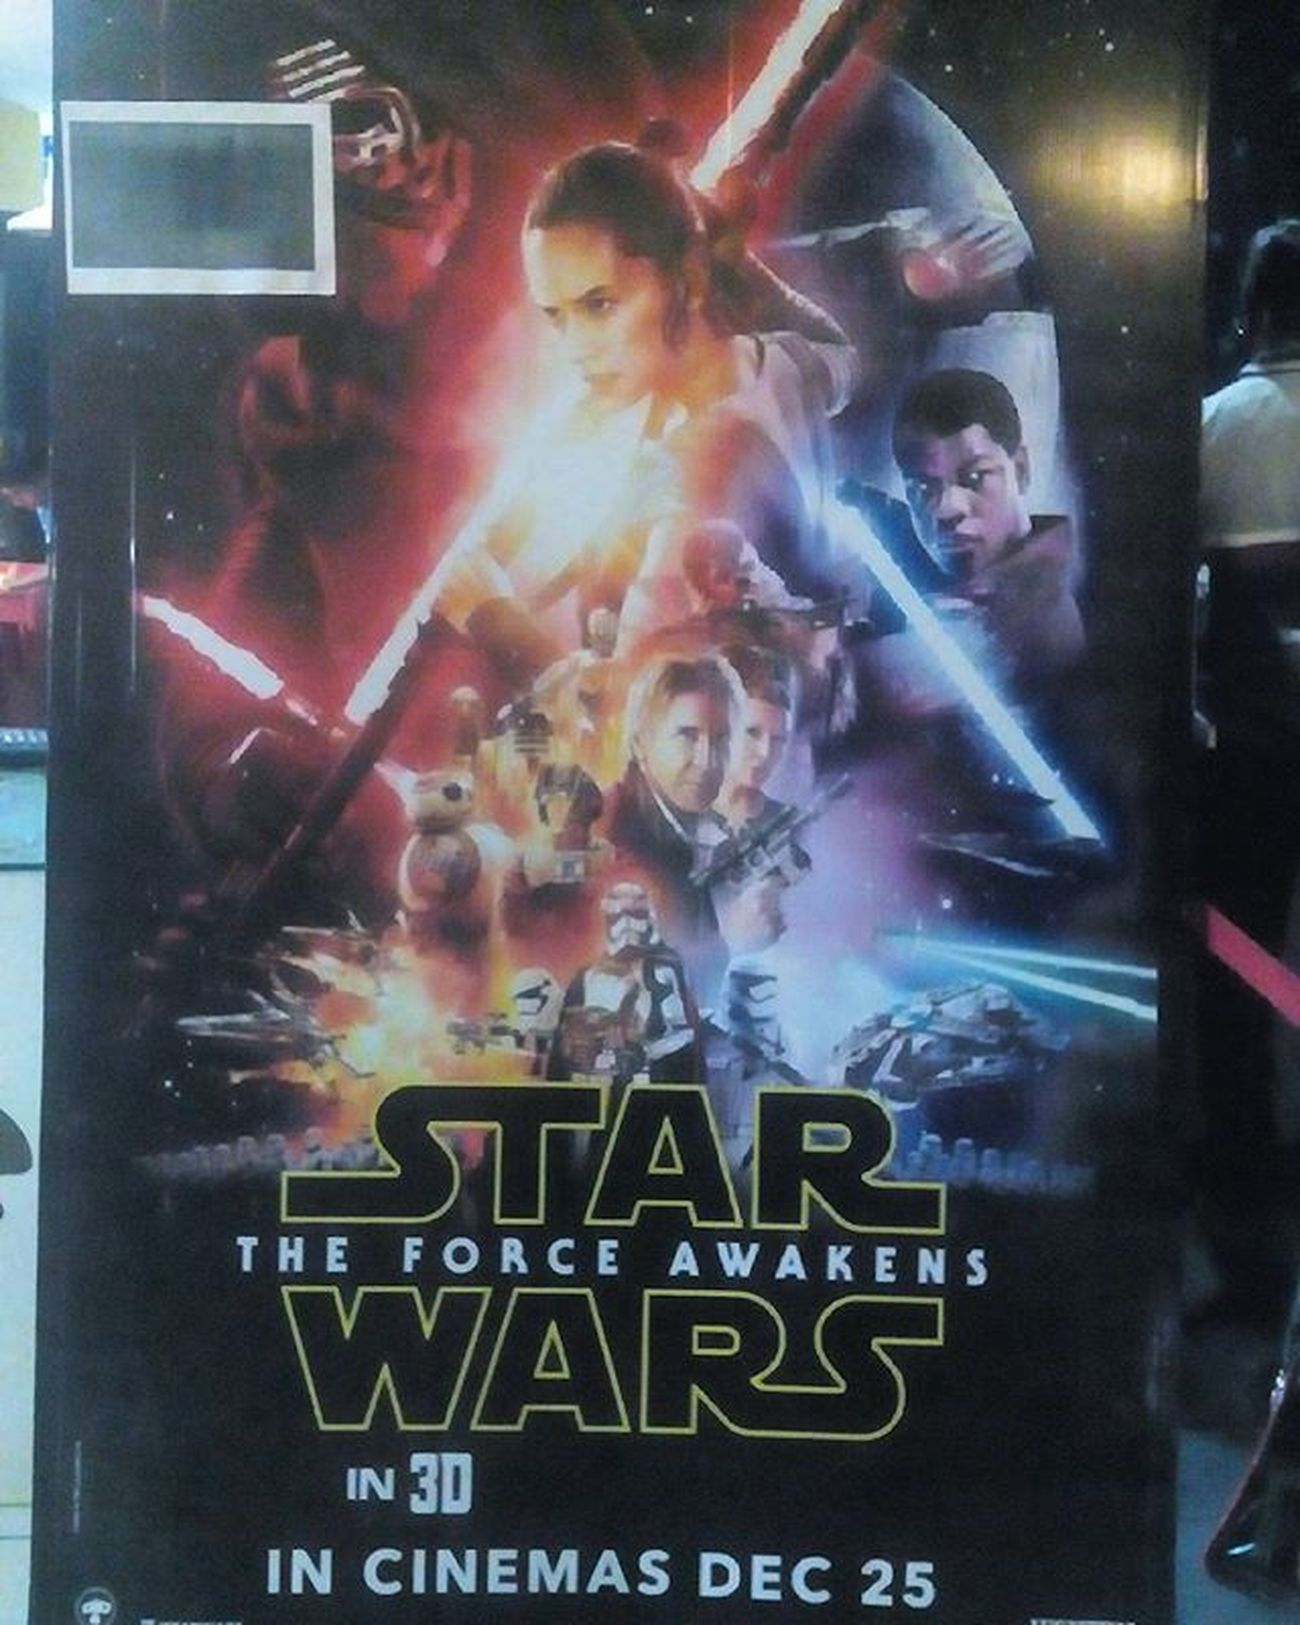 Most anticipated movie of this year .... Released today on 25th and completely satisfied by the movie . Imax Hyderabda the biggest imax screen the world ..pretty awesome .... Wonderful movie and 10/10 Rating . Fotogeek15 Starwars Starwarstheforceawakens Episode7 Instagrap MOVIE 10 /10 Lukeskywalker R .I.P HansSolo . Poster